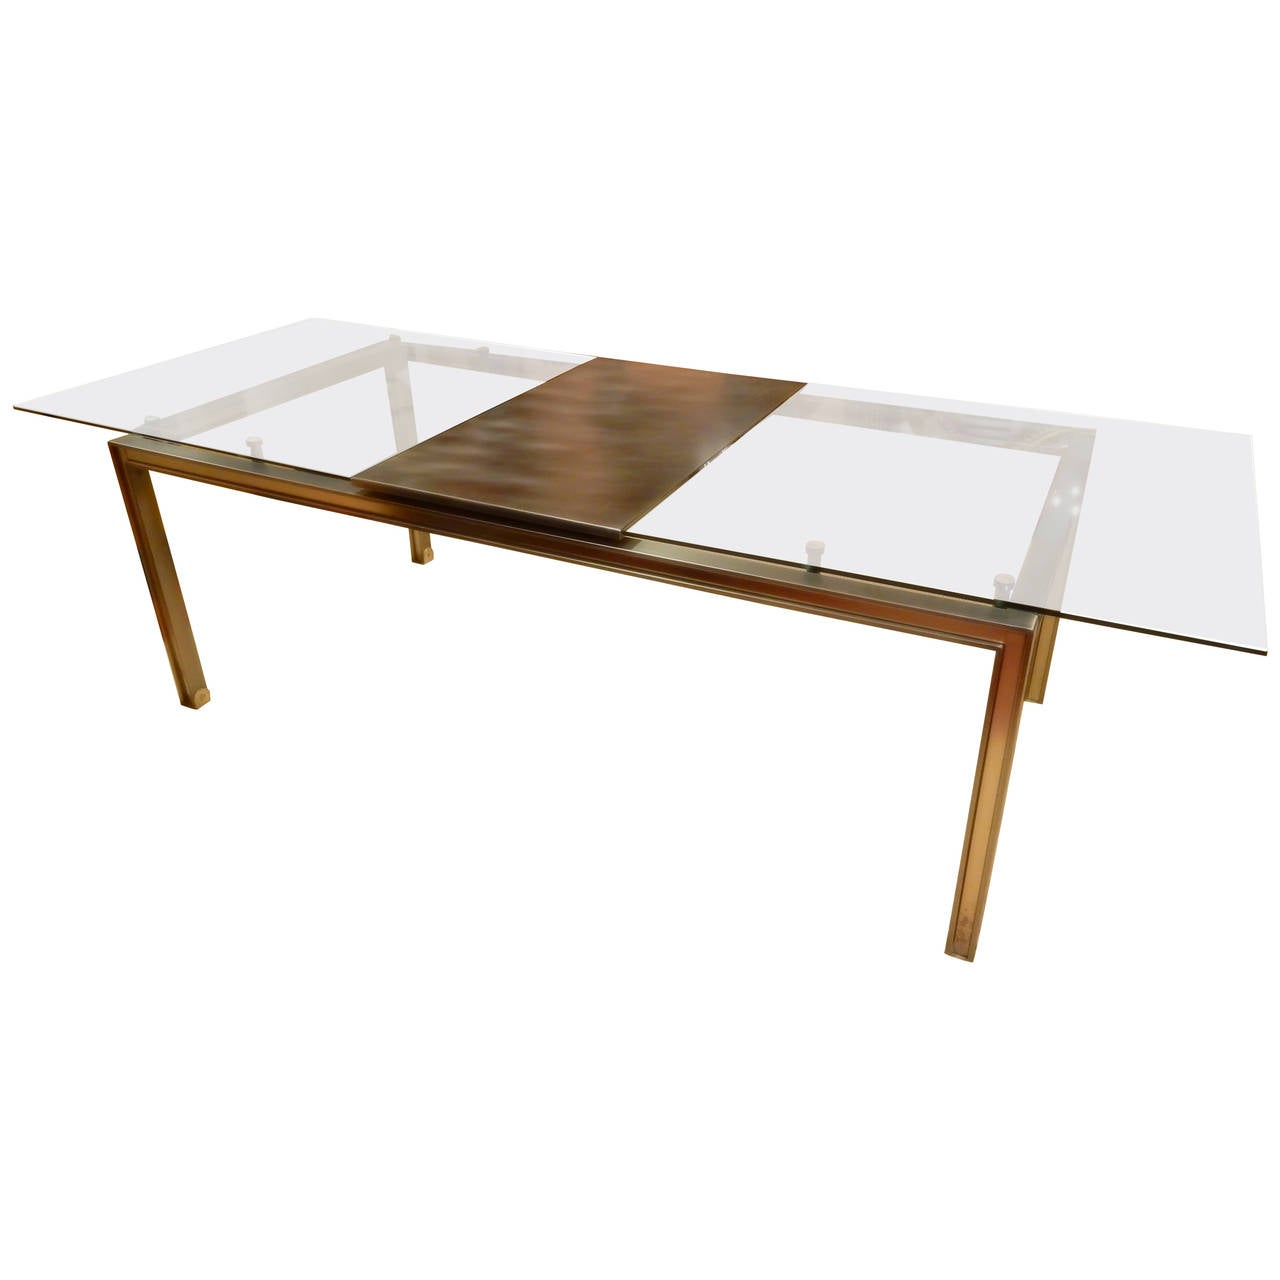 1970s glass and metal extension dining table at 1stdibs for Metal glass dining table